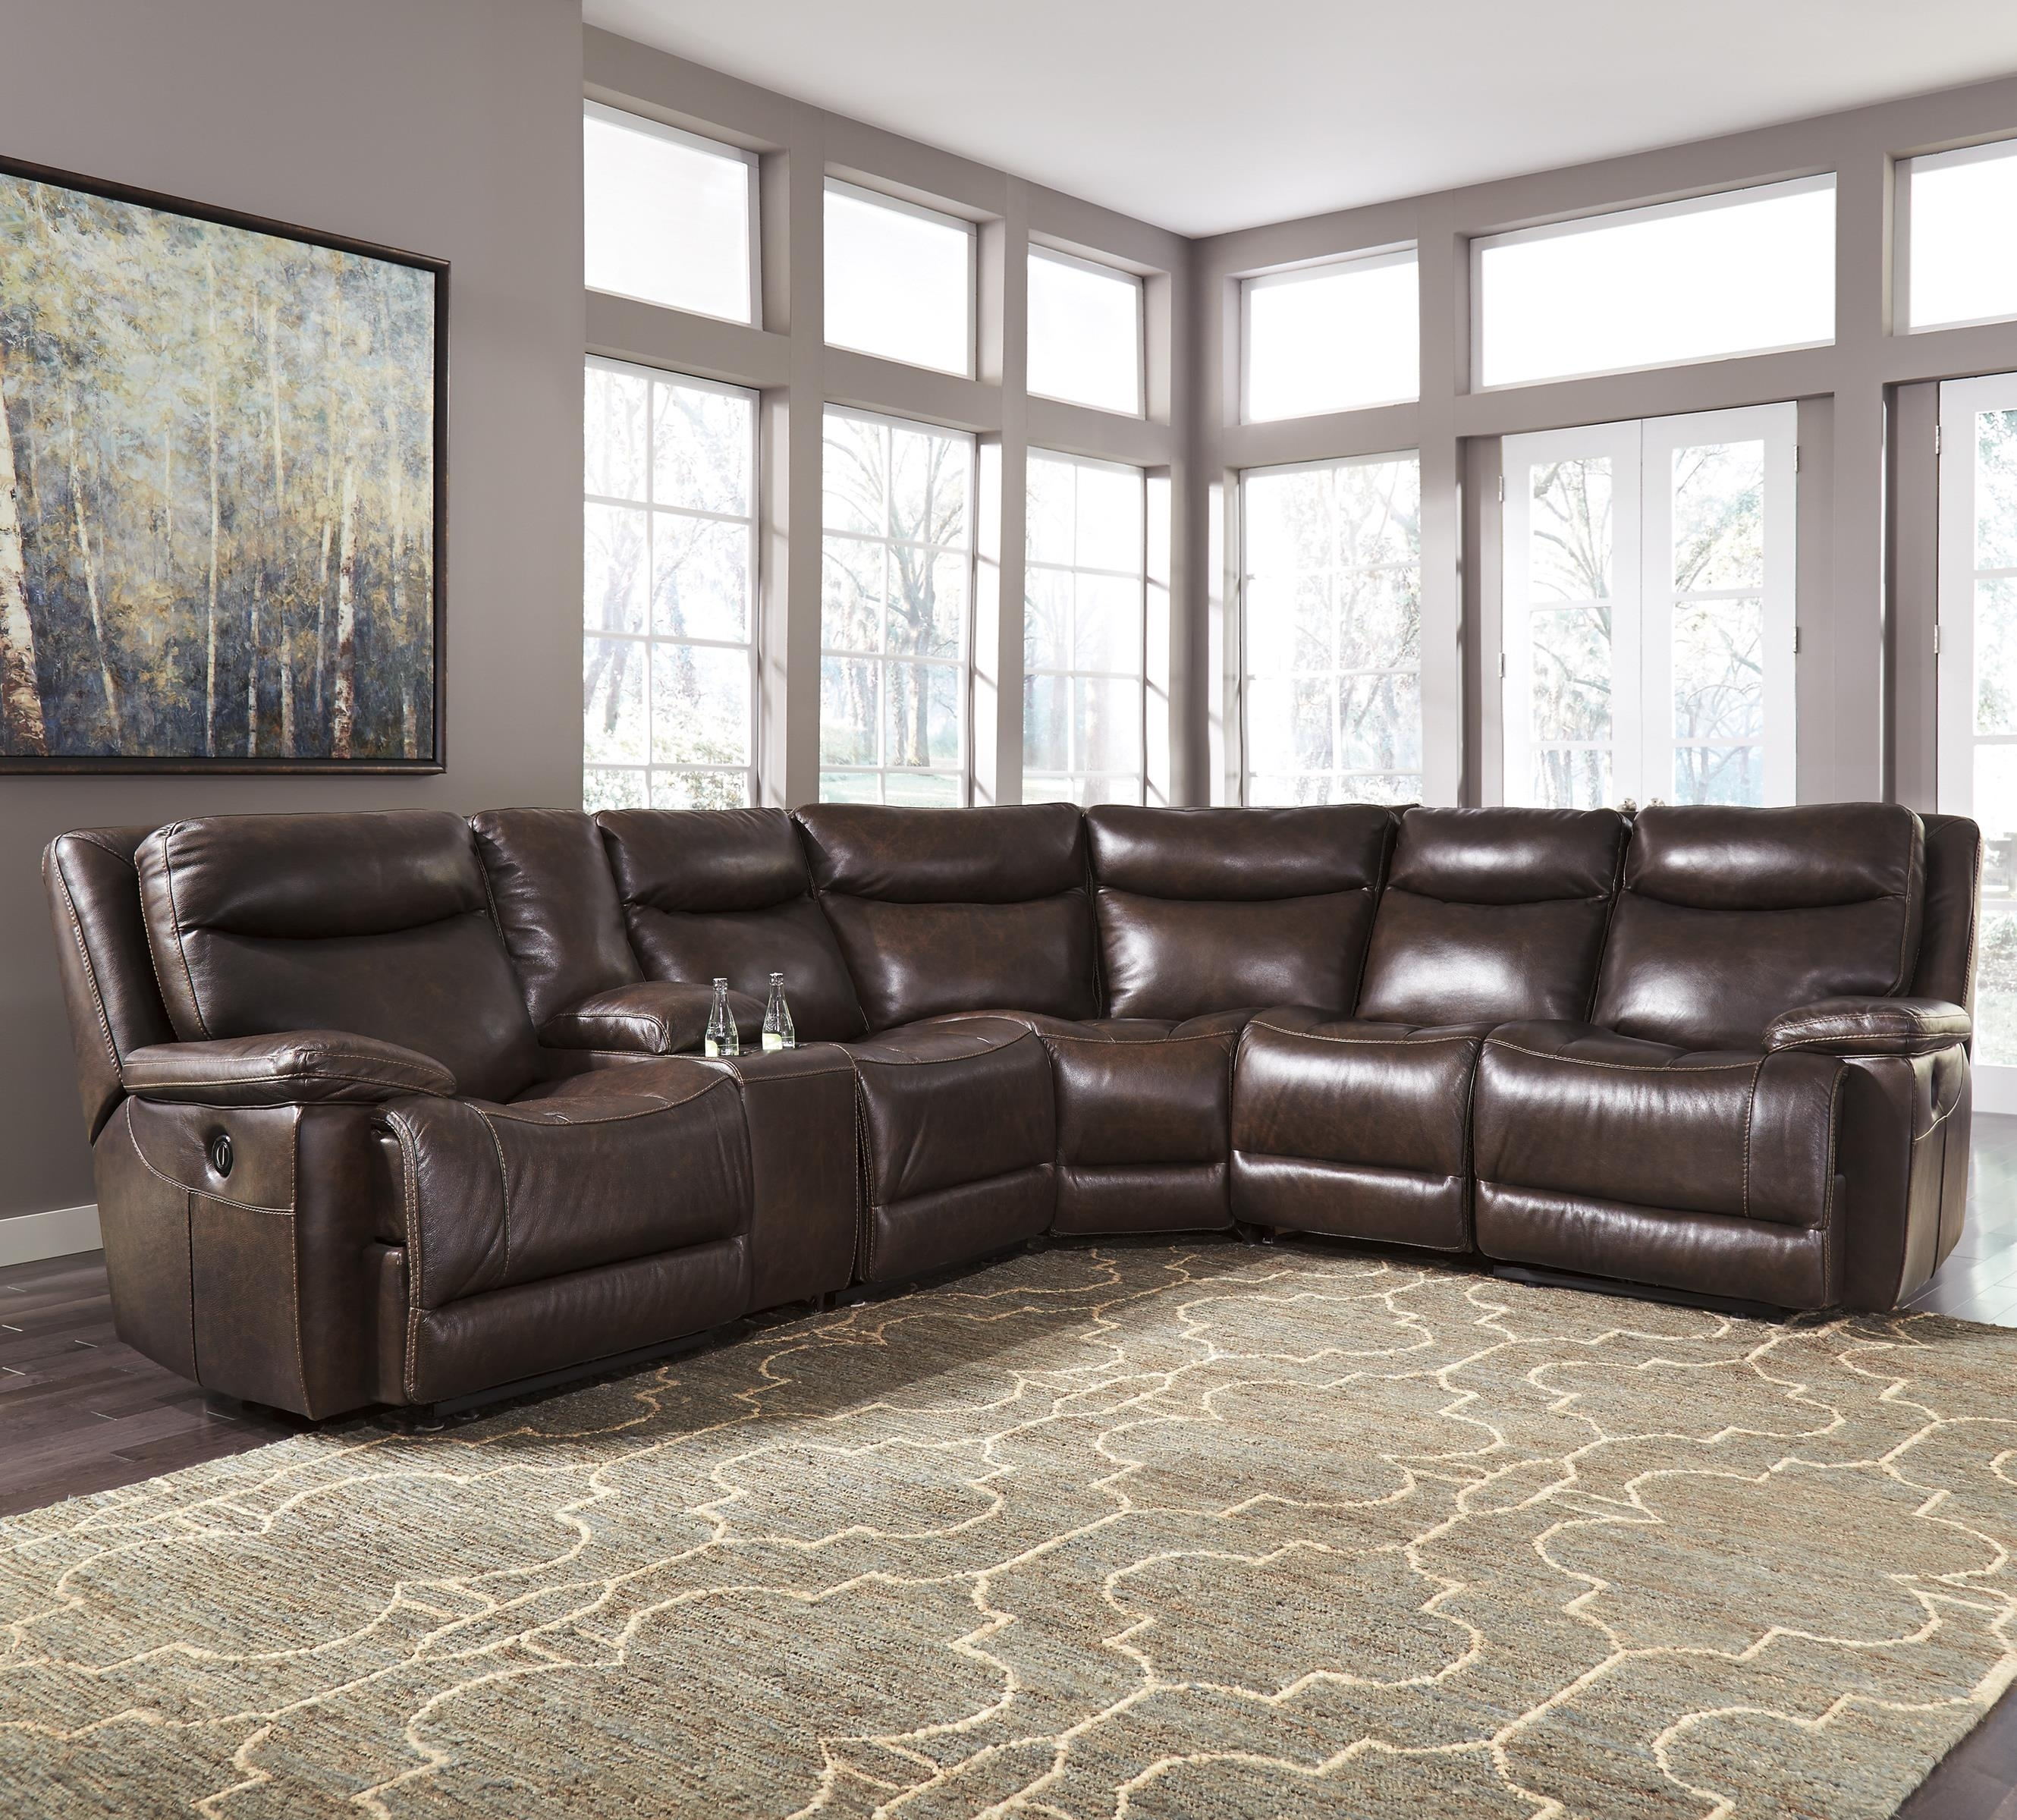 Signature Designashley Zaiden Contemporary Leather Match intended for Jackson 6 Piece Power Reclining Sectionals (Image 28 of 30)